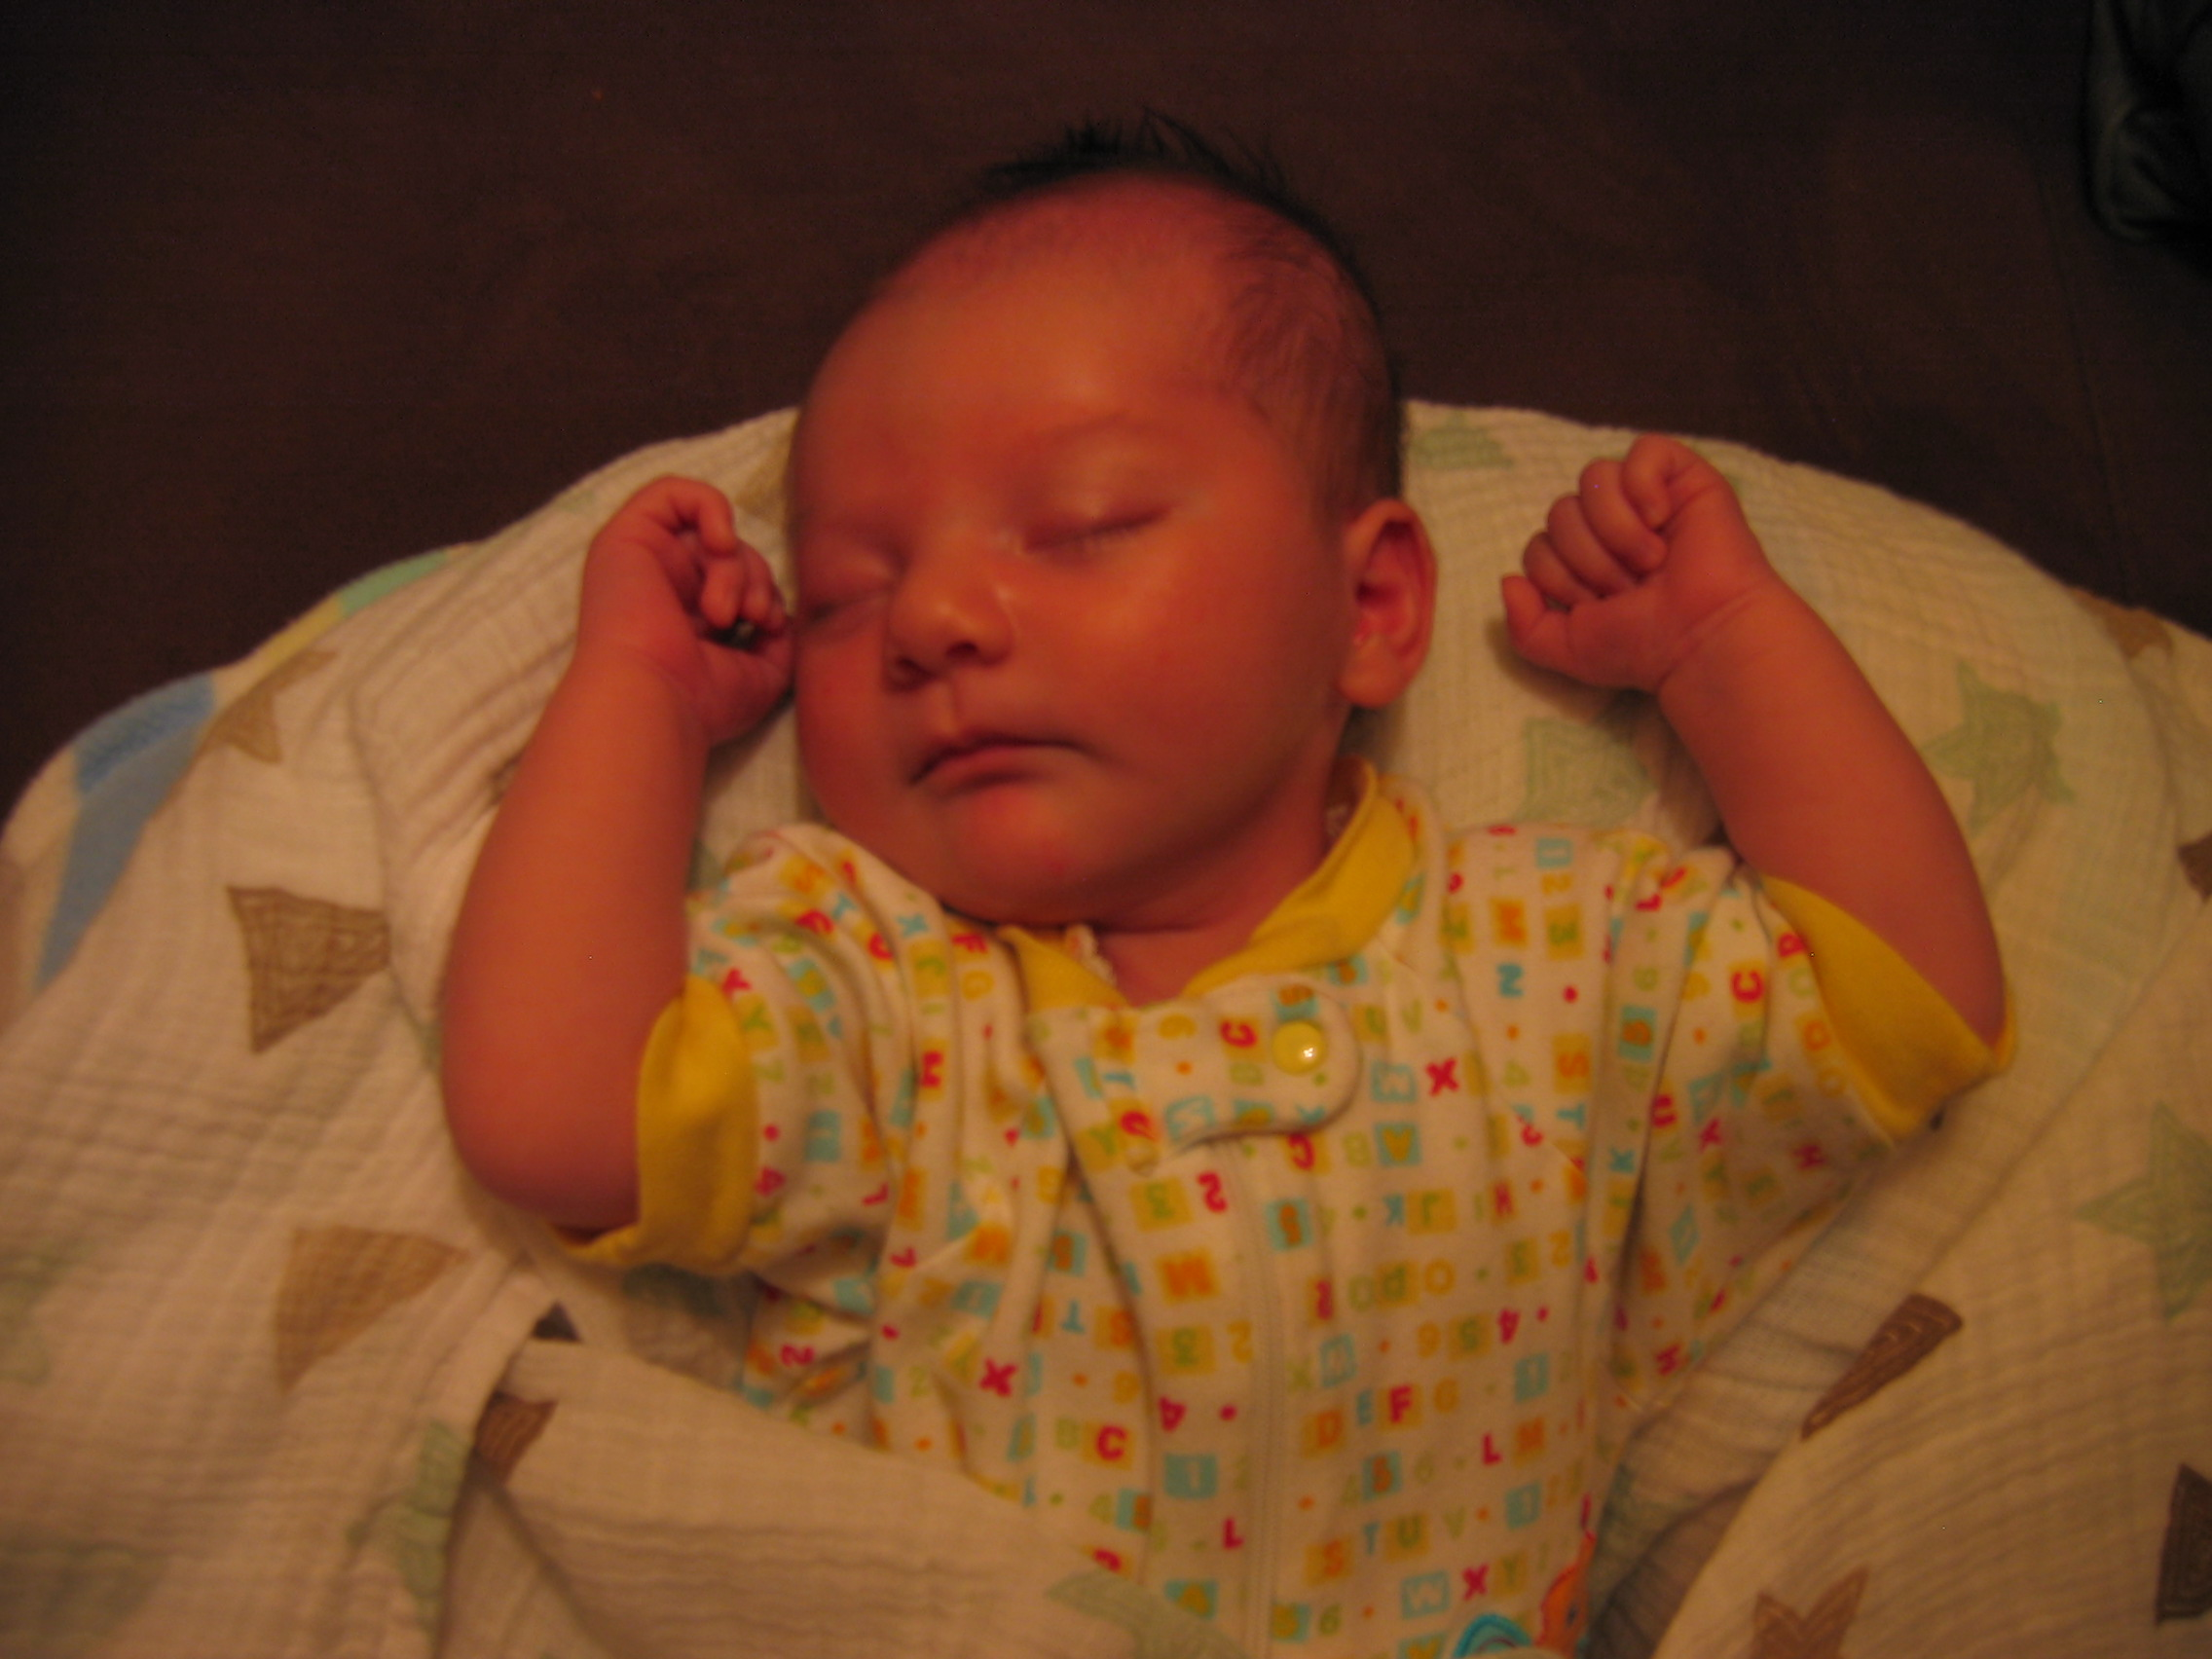 What Can Baby Sleep In Next To Bed Infant Sleep Research Bedsharing Self Soothing And Sleep